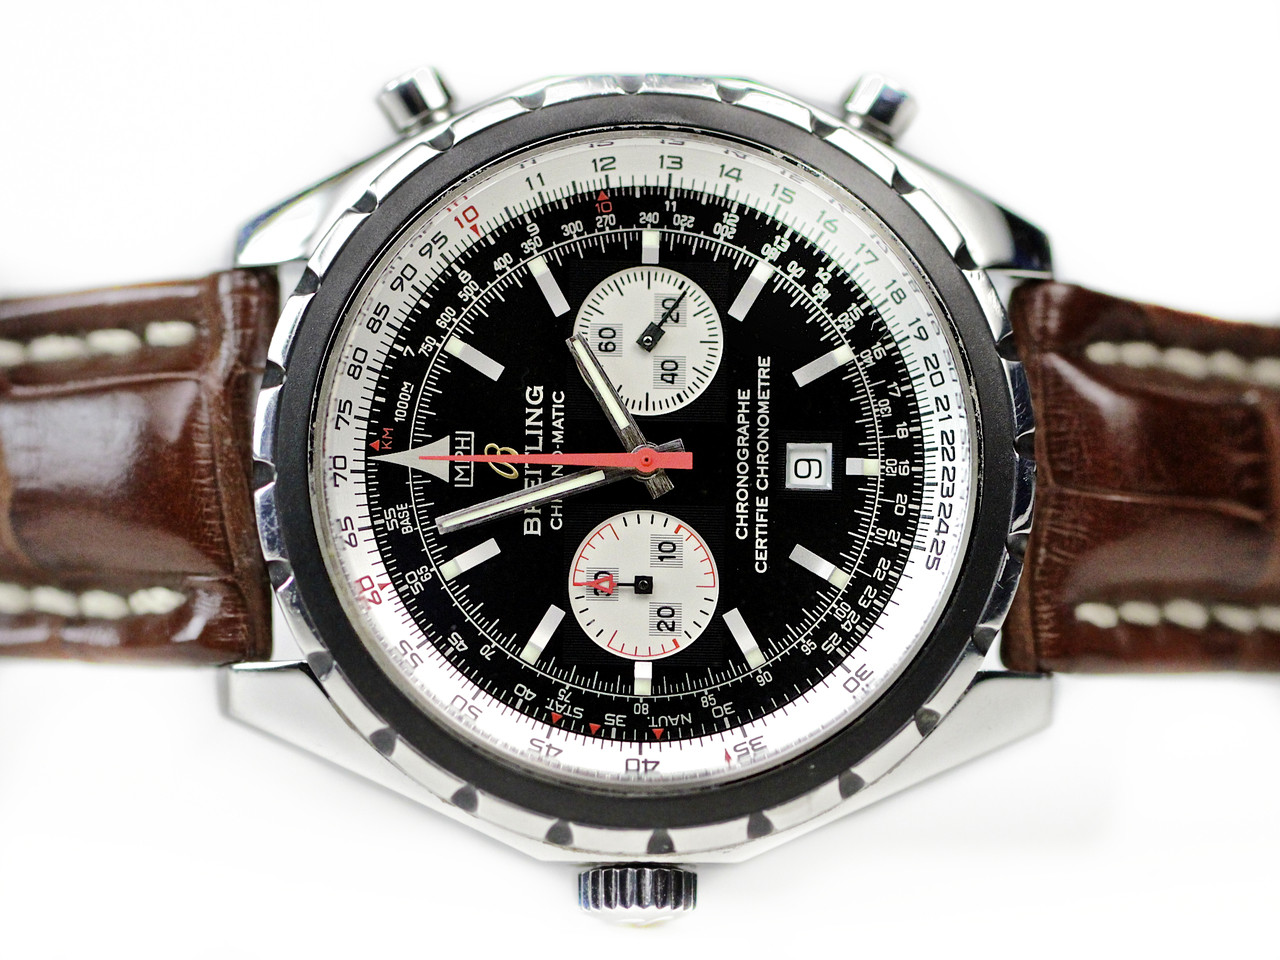 2dc02a487 Breitling Watch - Chrono-Matic A41360 used sale www.legendoftime.com